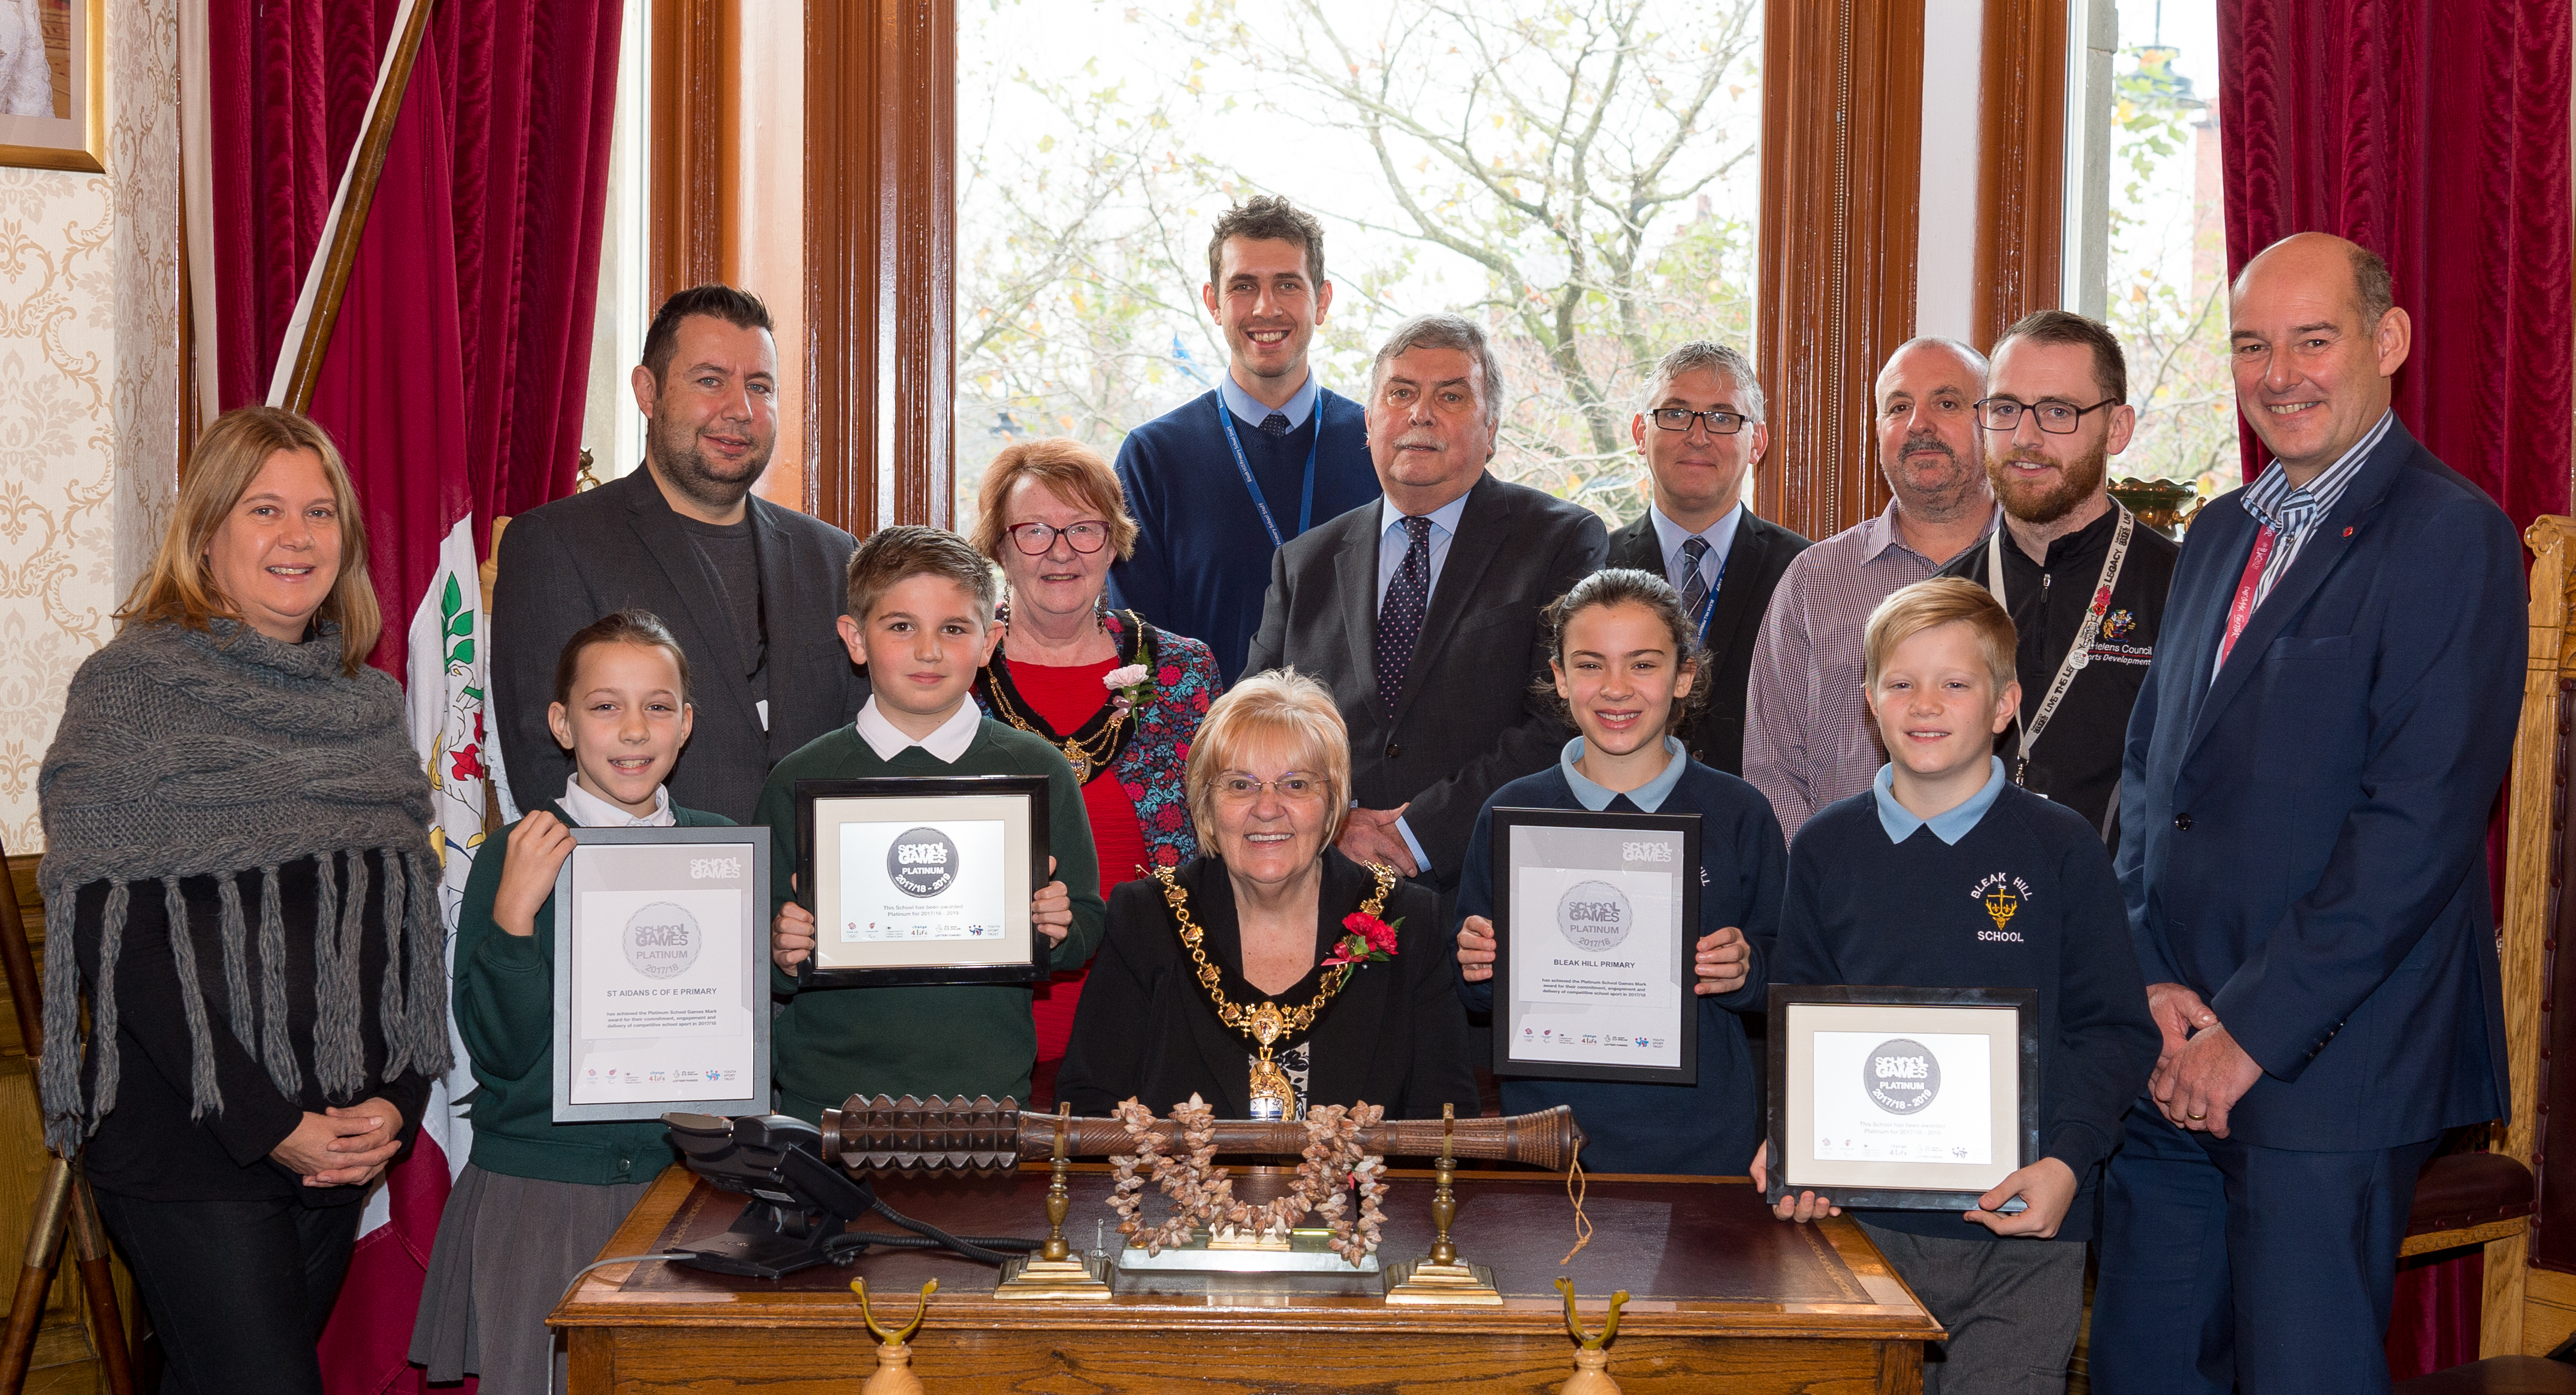 , St Helens schools recognised for achieving top sports award, Skem News - The Top Source for Skelmersdale News, Skem News - The Top Source for Skelmersdale News